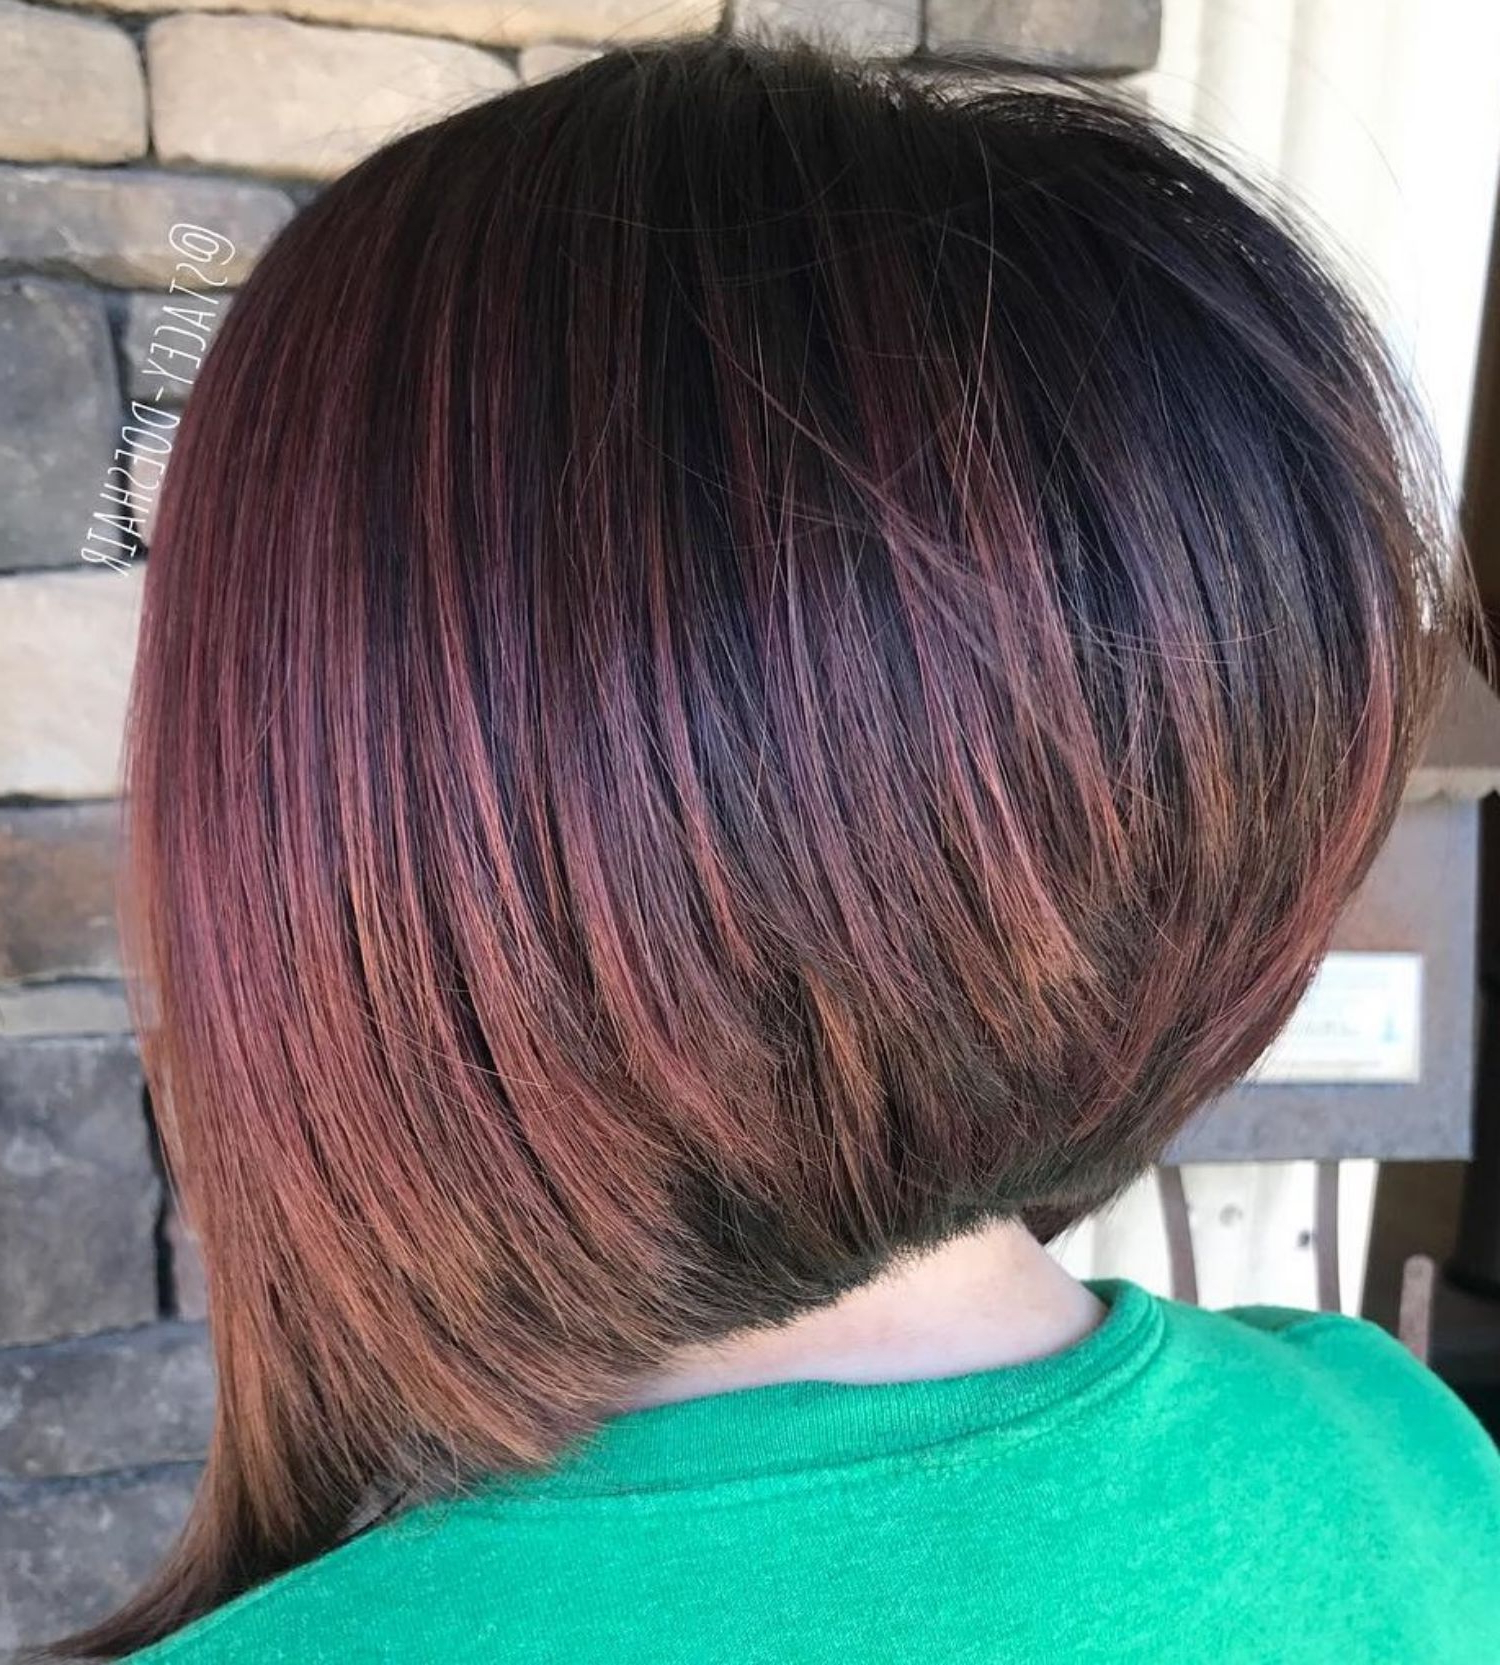 Inverted Angled Bob For Straight Hair   Thick Hair Styles In Bronde Balayage For Short Layered Haircuts (View 6 of 20)